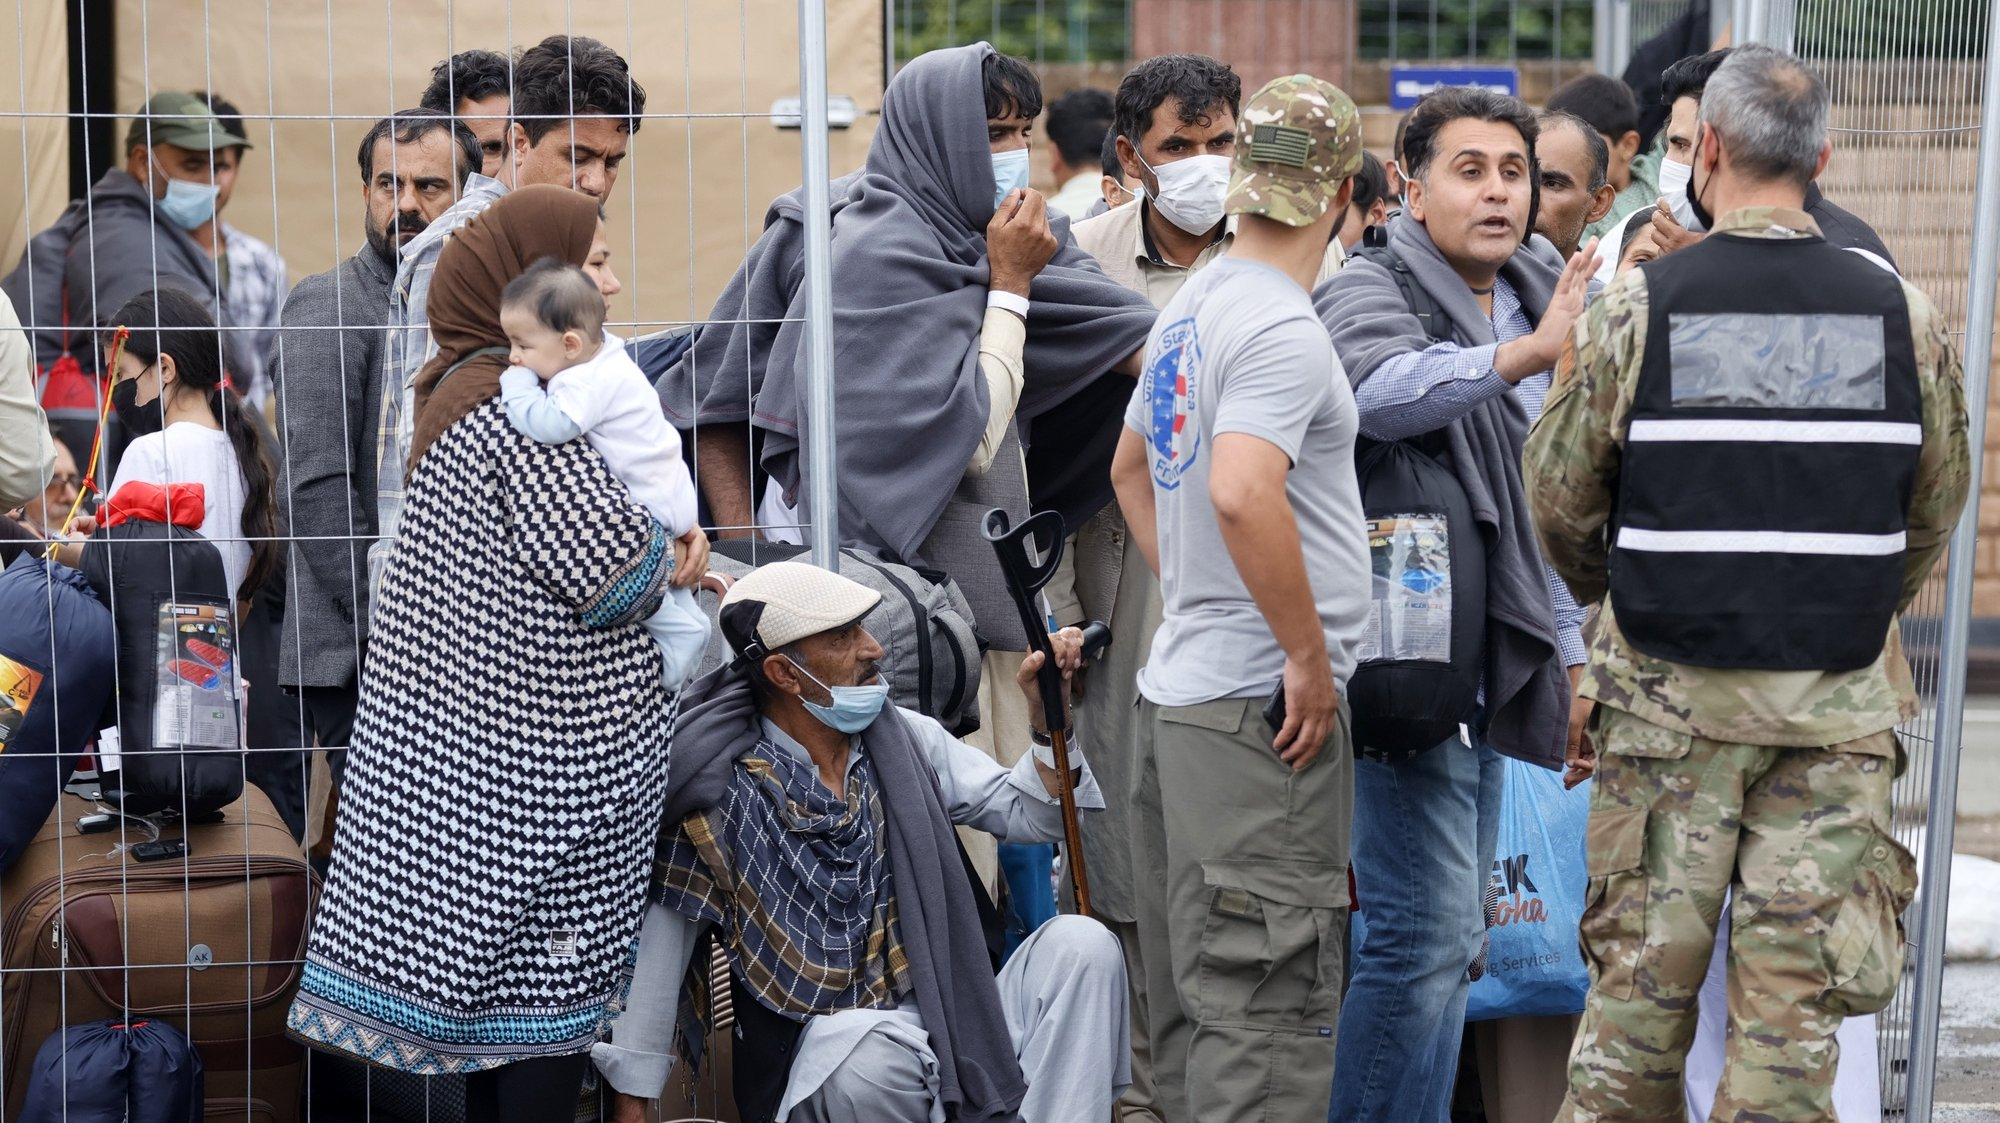 epa09436904 Evacuees from Afghanistan wait at the US Air Base in Ramstein, Germany, 30 August 2021. Ramstein Air Base is serving as major hub in the operation to evacuate people from Afghanistan, as the site is the world's largest US air force base outside the United States of America.  As part of Operation Allies Refuge, evacuees will receive support such as temporary lodging, food and water and access to medical care as well as religious care at Ramstein Air Base while preparing for onward movements to their final destinations. This operation is facilitating the quick, safe evacuation of US citizens, Special Immigrant Visa applicants, and other at-risk Afghans from Afghanistan.  EPA/RONALD WITTEK